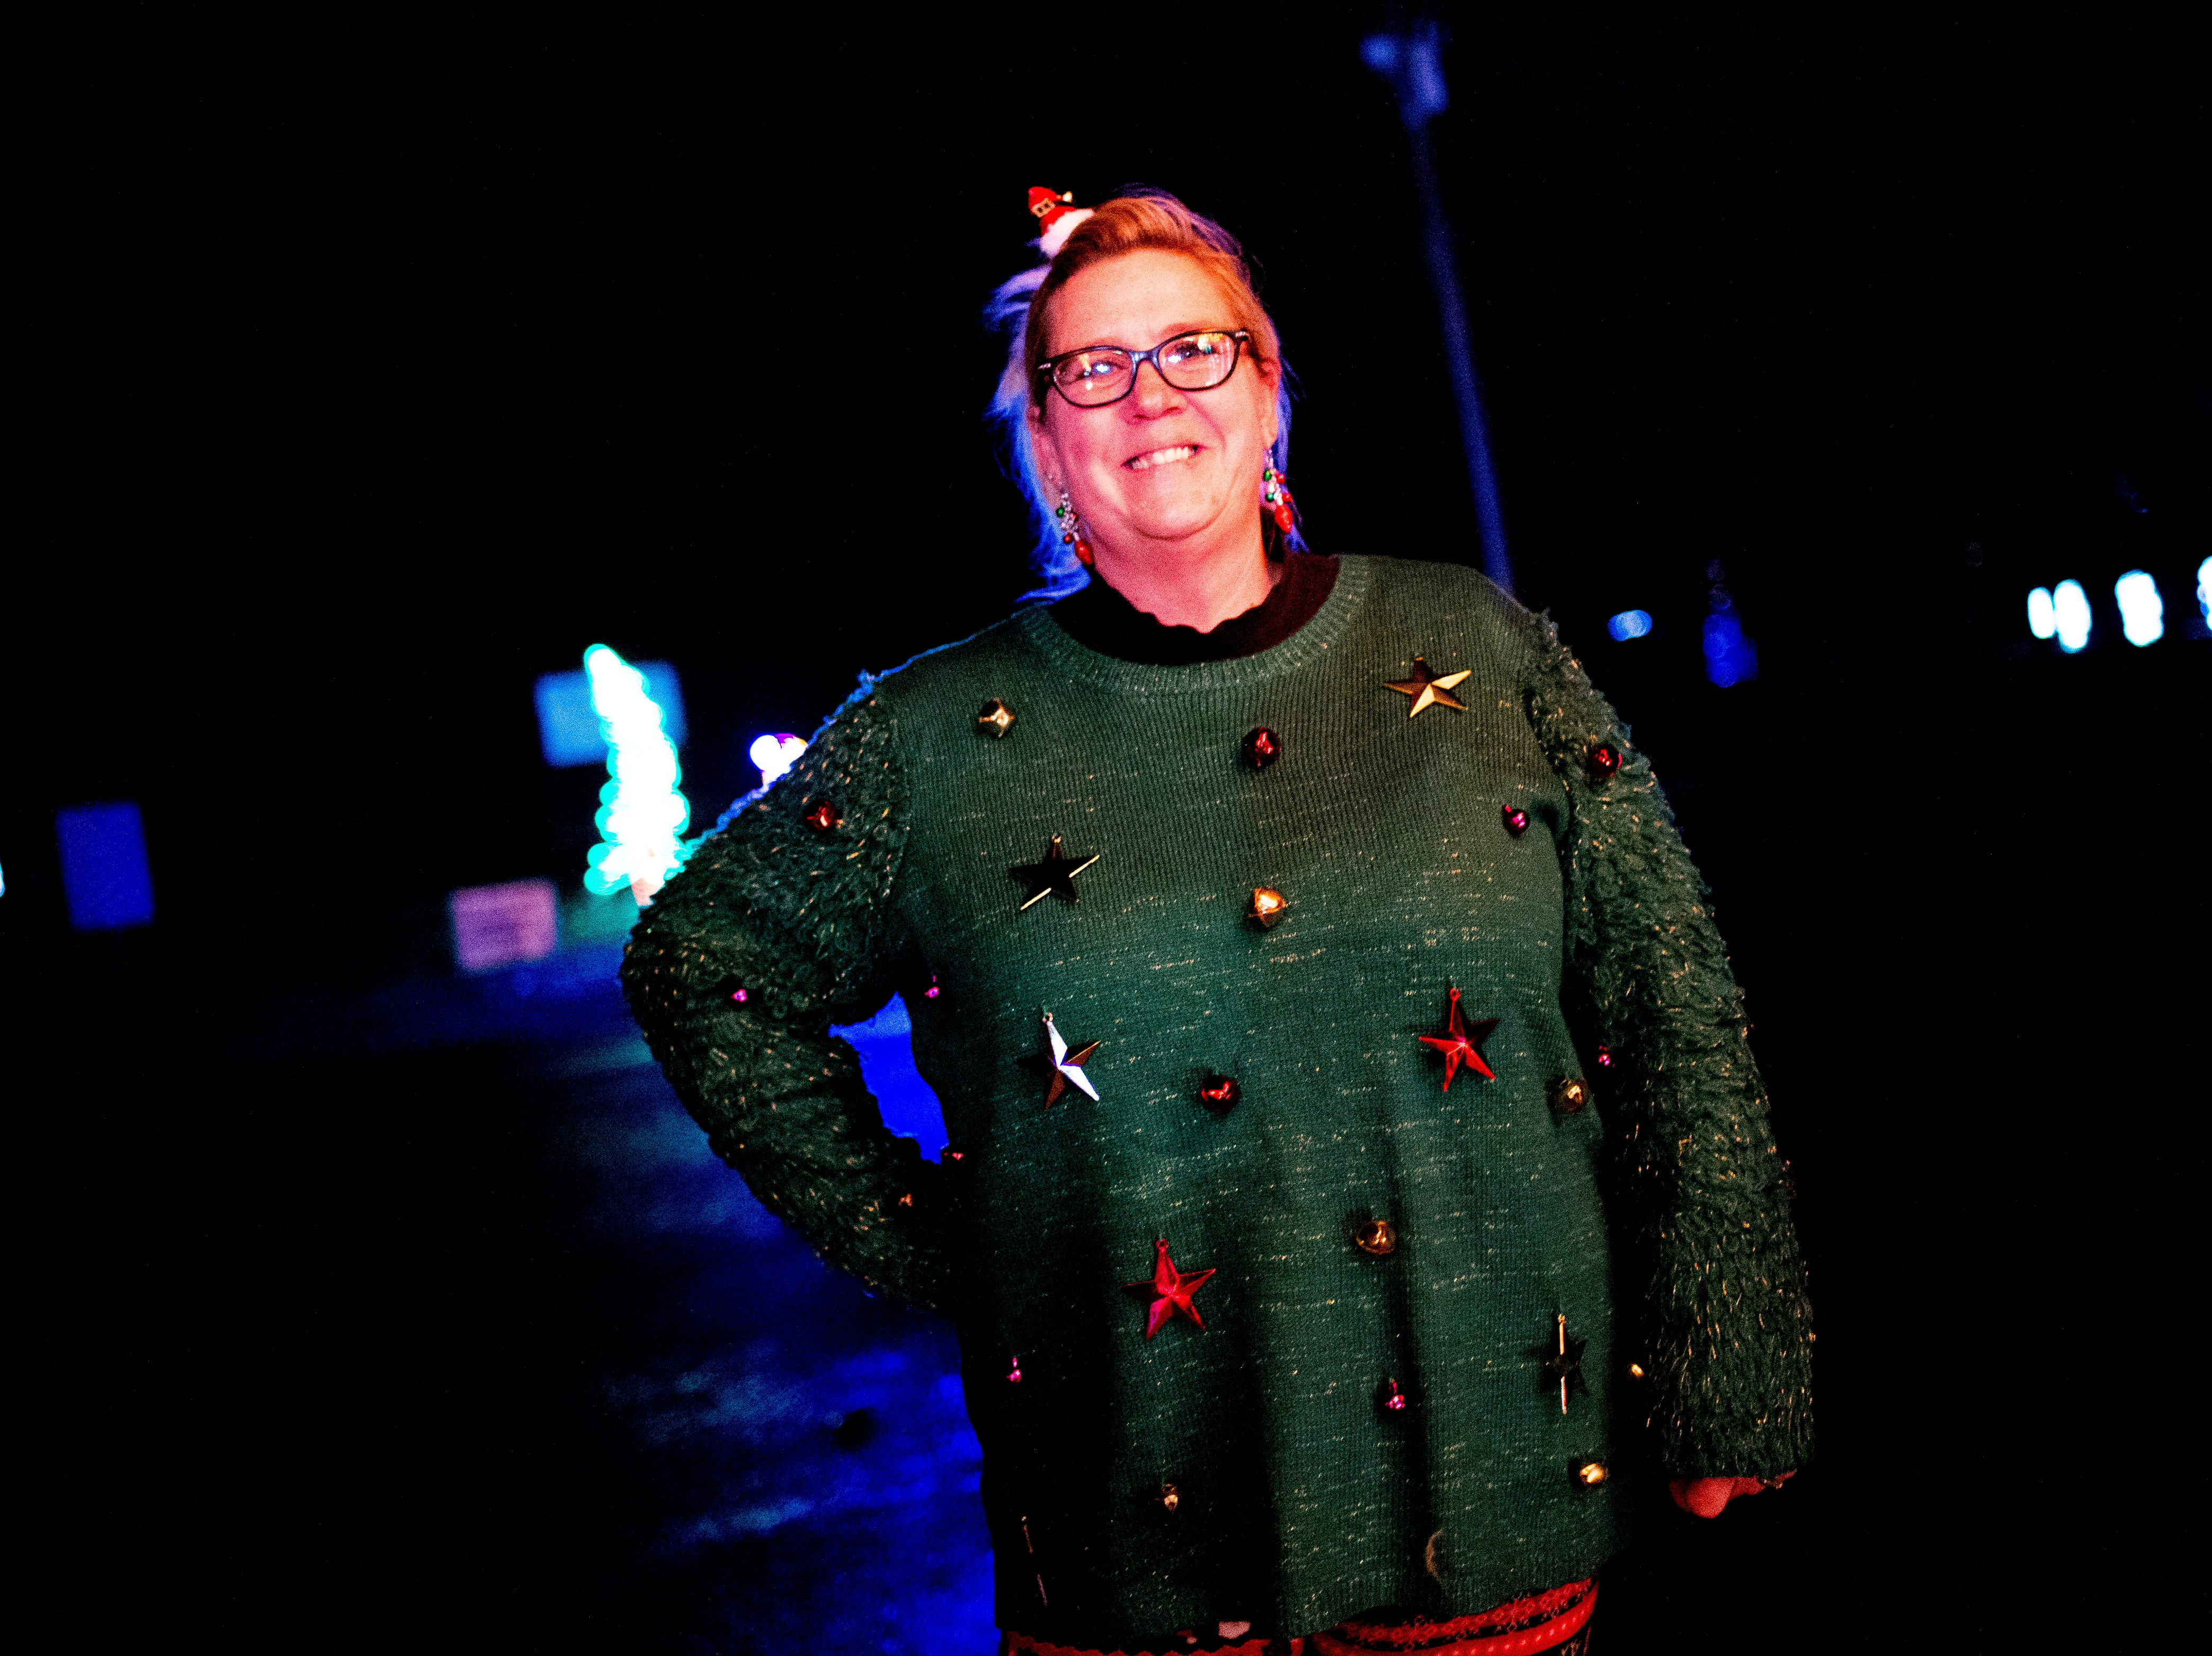 Melanie Millsaps, of Maryville, poses with her Christmas gear at Knox CountyÕs 20th annual Holiday Festival of Lights kick off at The Cove at Concord Park in Farragut, Tennessee on Friday, December 21, 2018. The family-friendly event is free and will run through Dec. 29 from 6 to 9 p.m., excluding Christmas Eve and Christmas Day.